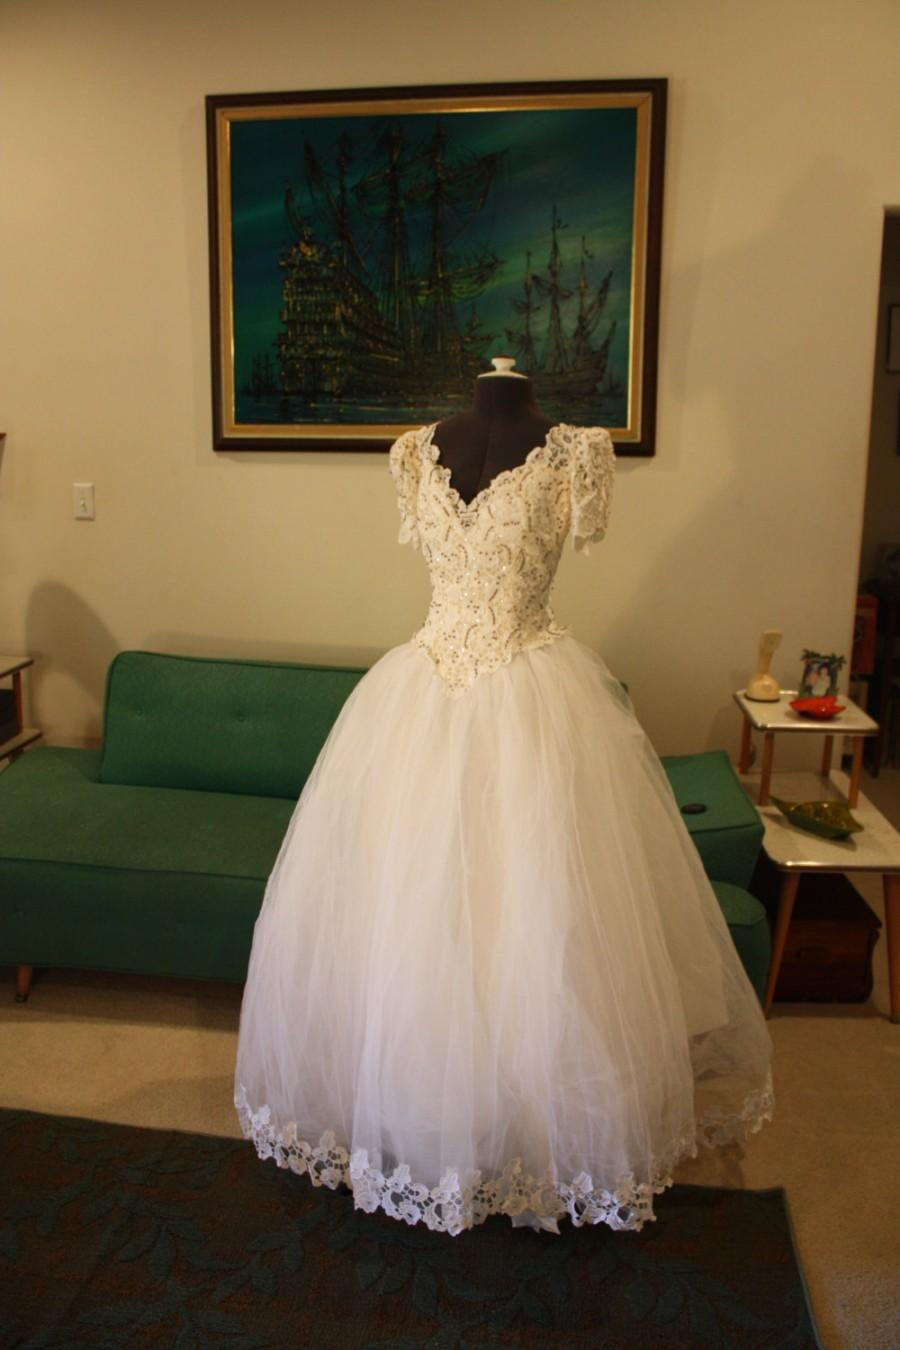 Düğün - Vintage House of Bianchi Wedding Dress Vintage Wedding Dress